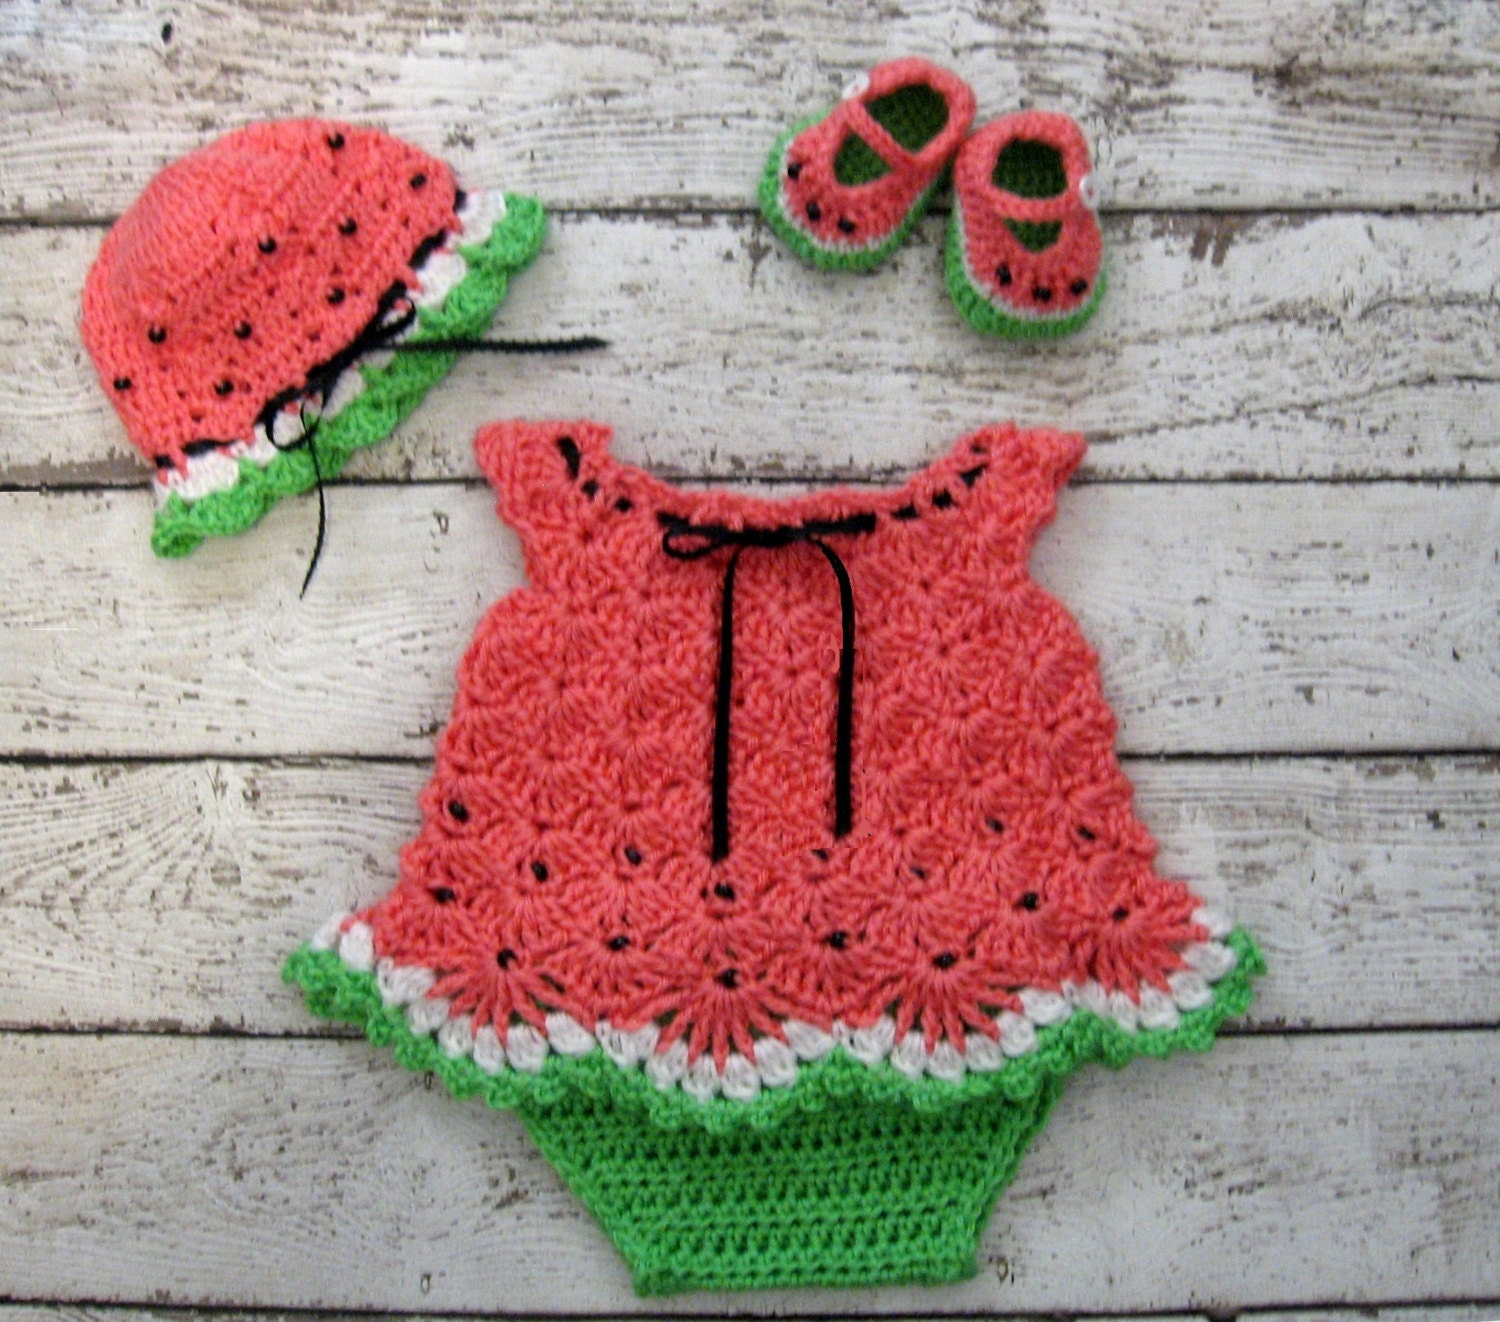 Crochet Baby Clothes Newest and Cutest Baby Clothing Collection by